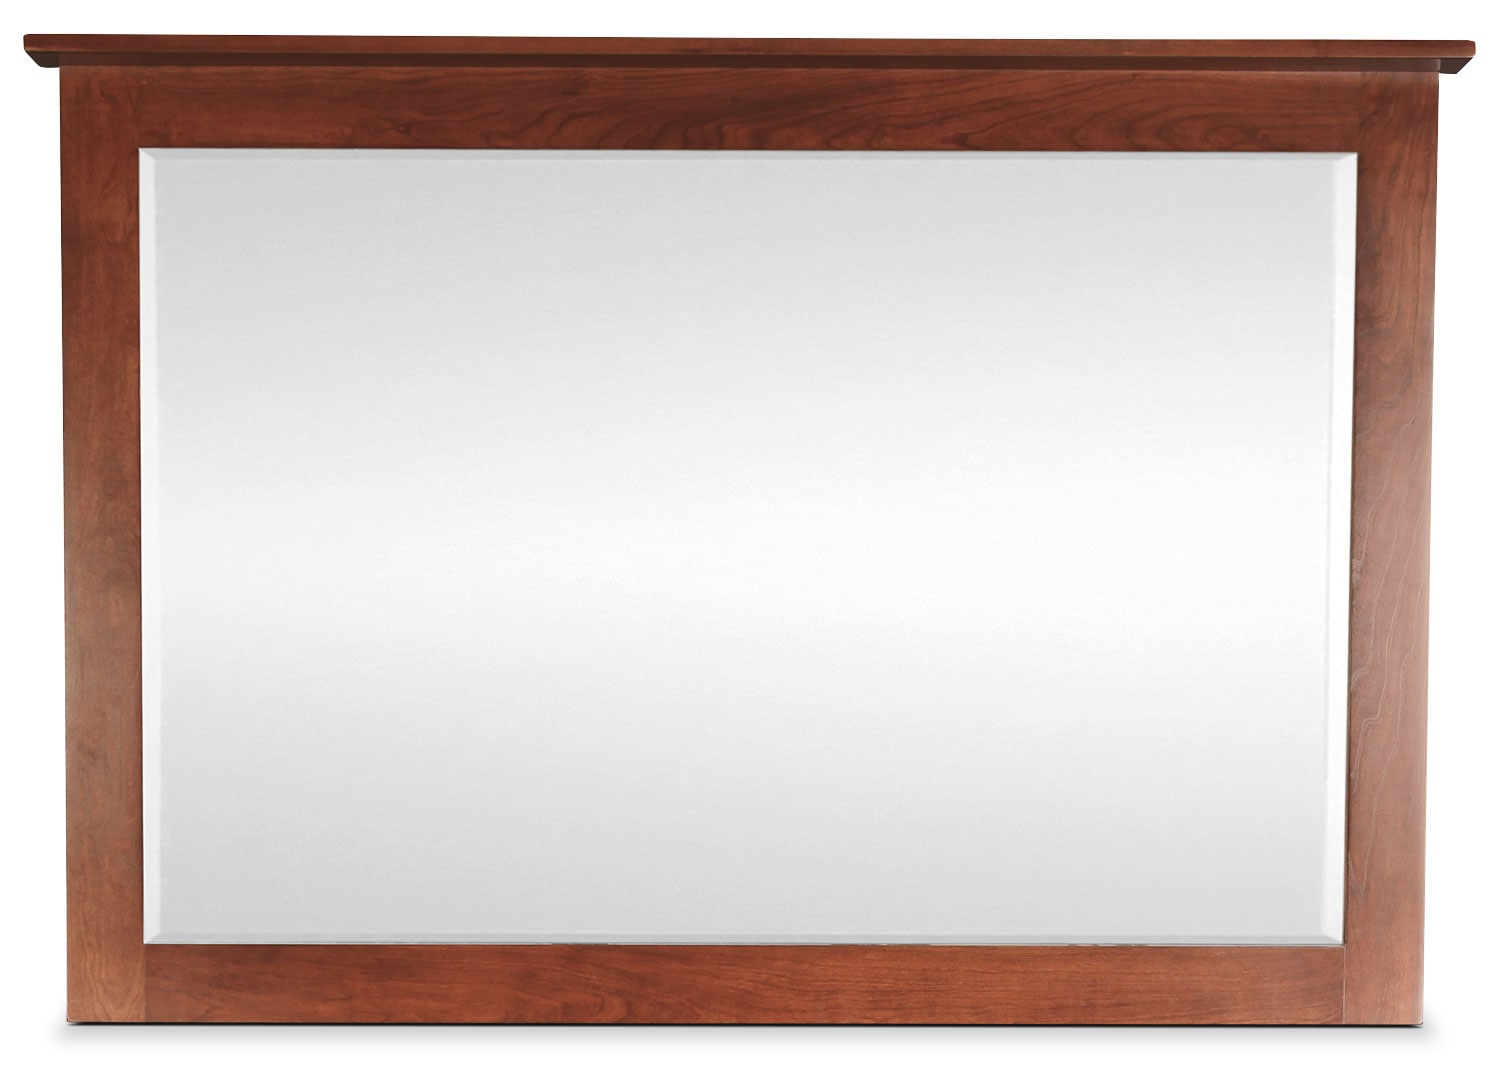 Amish Treasure Mirror - Warm Cherry